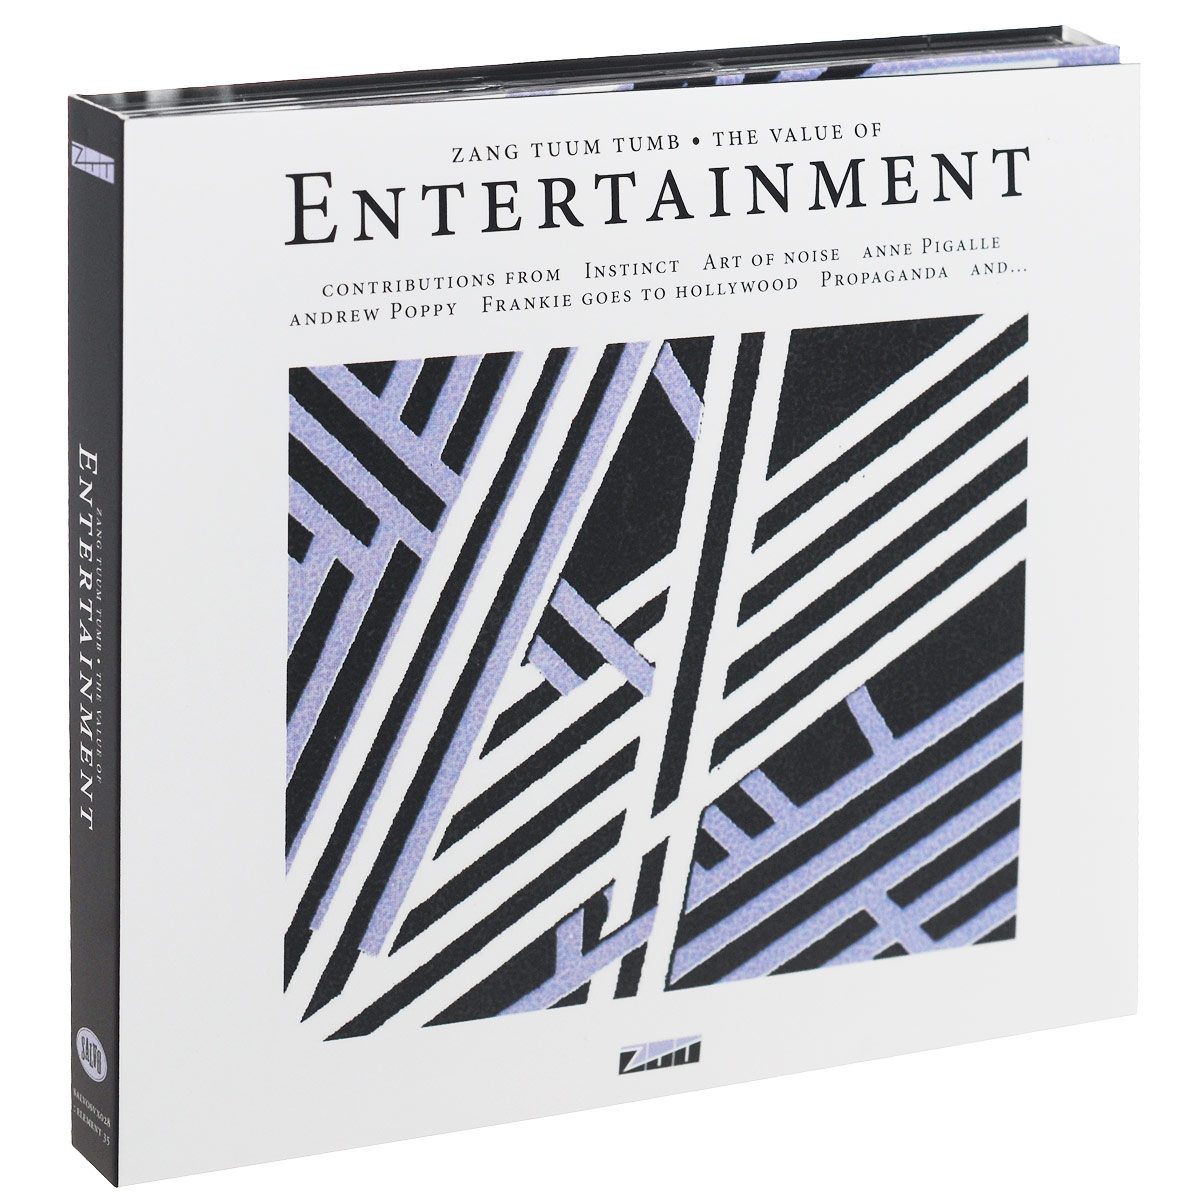 The Value of Entertainment (CD + DVD) cd art of noise in visible silence deluxe